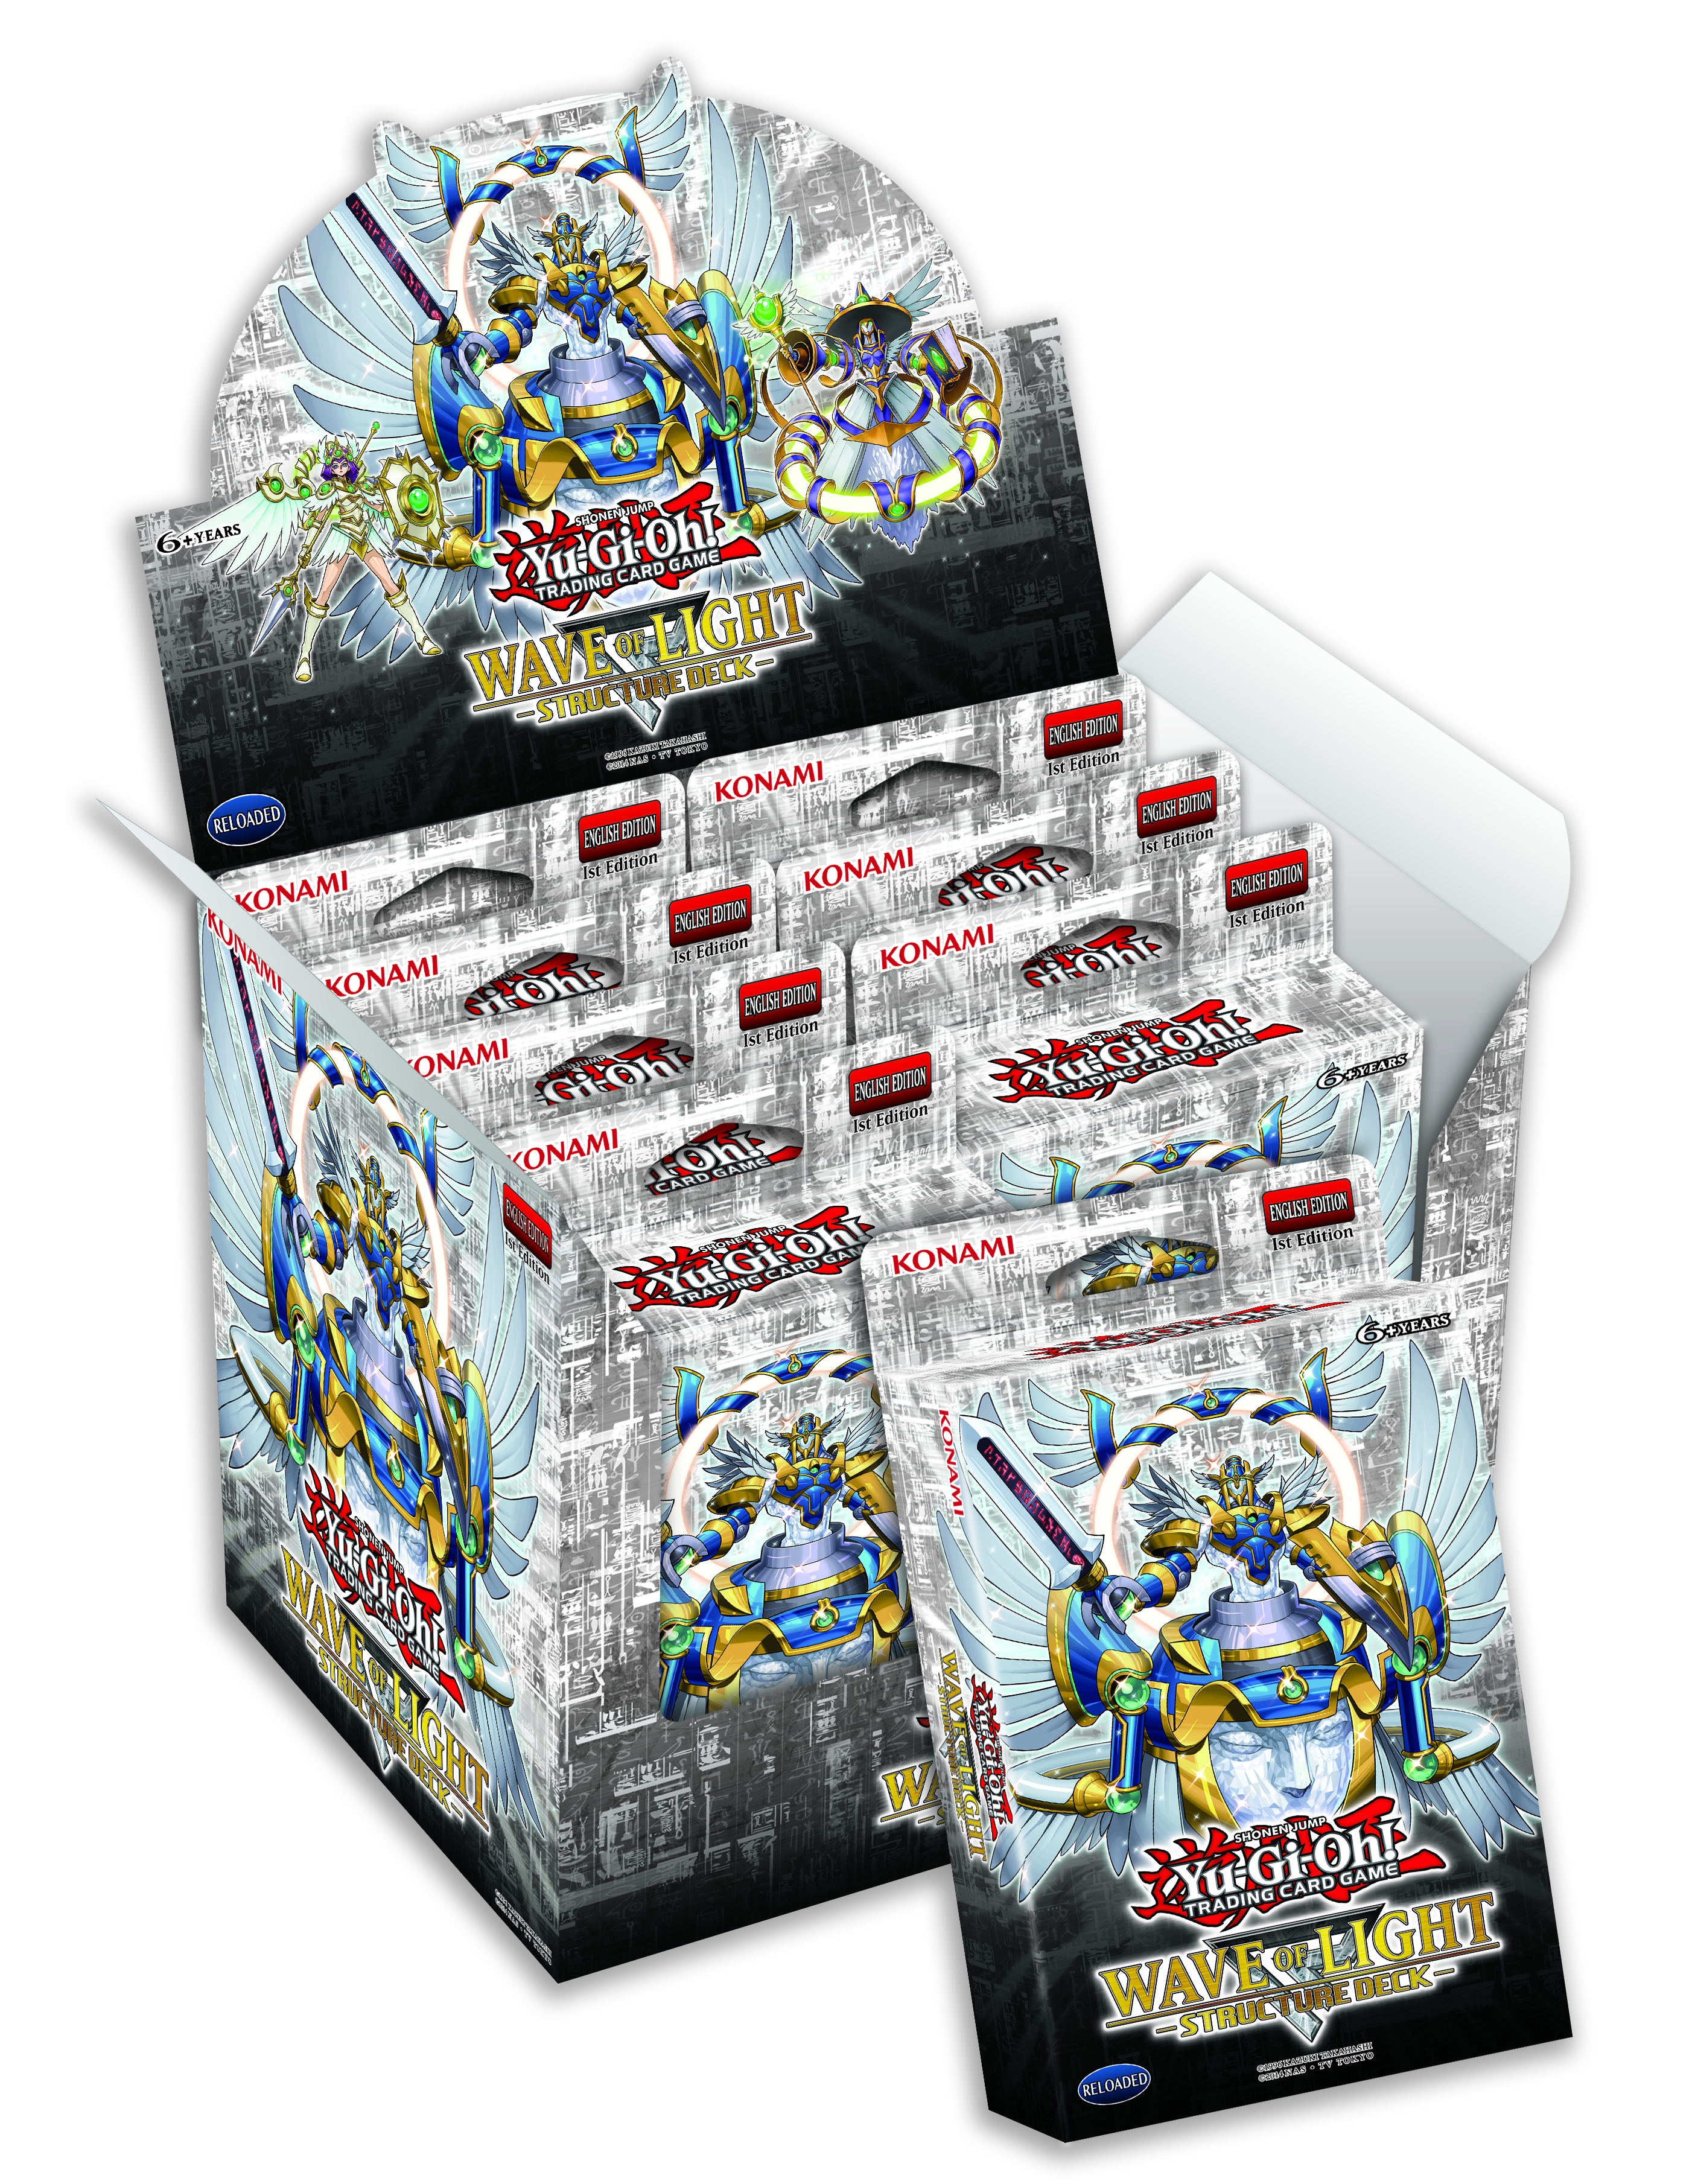 Yu gi oh structure deck wave of light display box 8ct yu gi oh yu gi oh structure deck wave of light display box 8ct mozeypictures Image collections